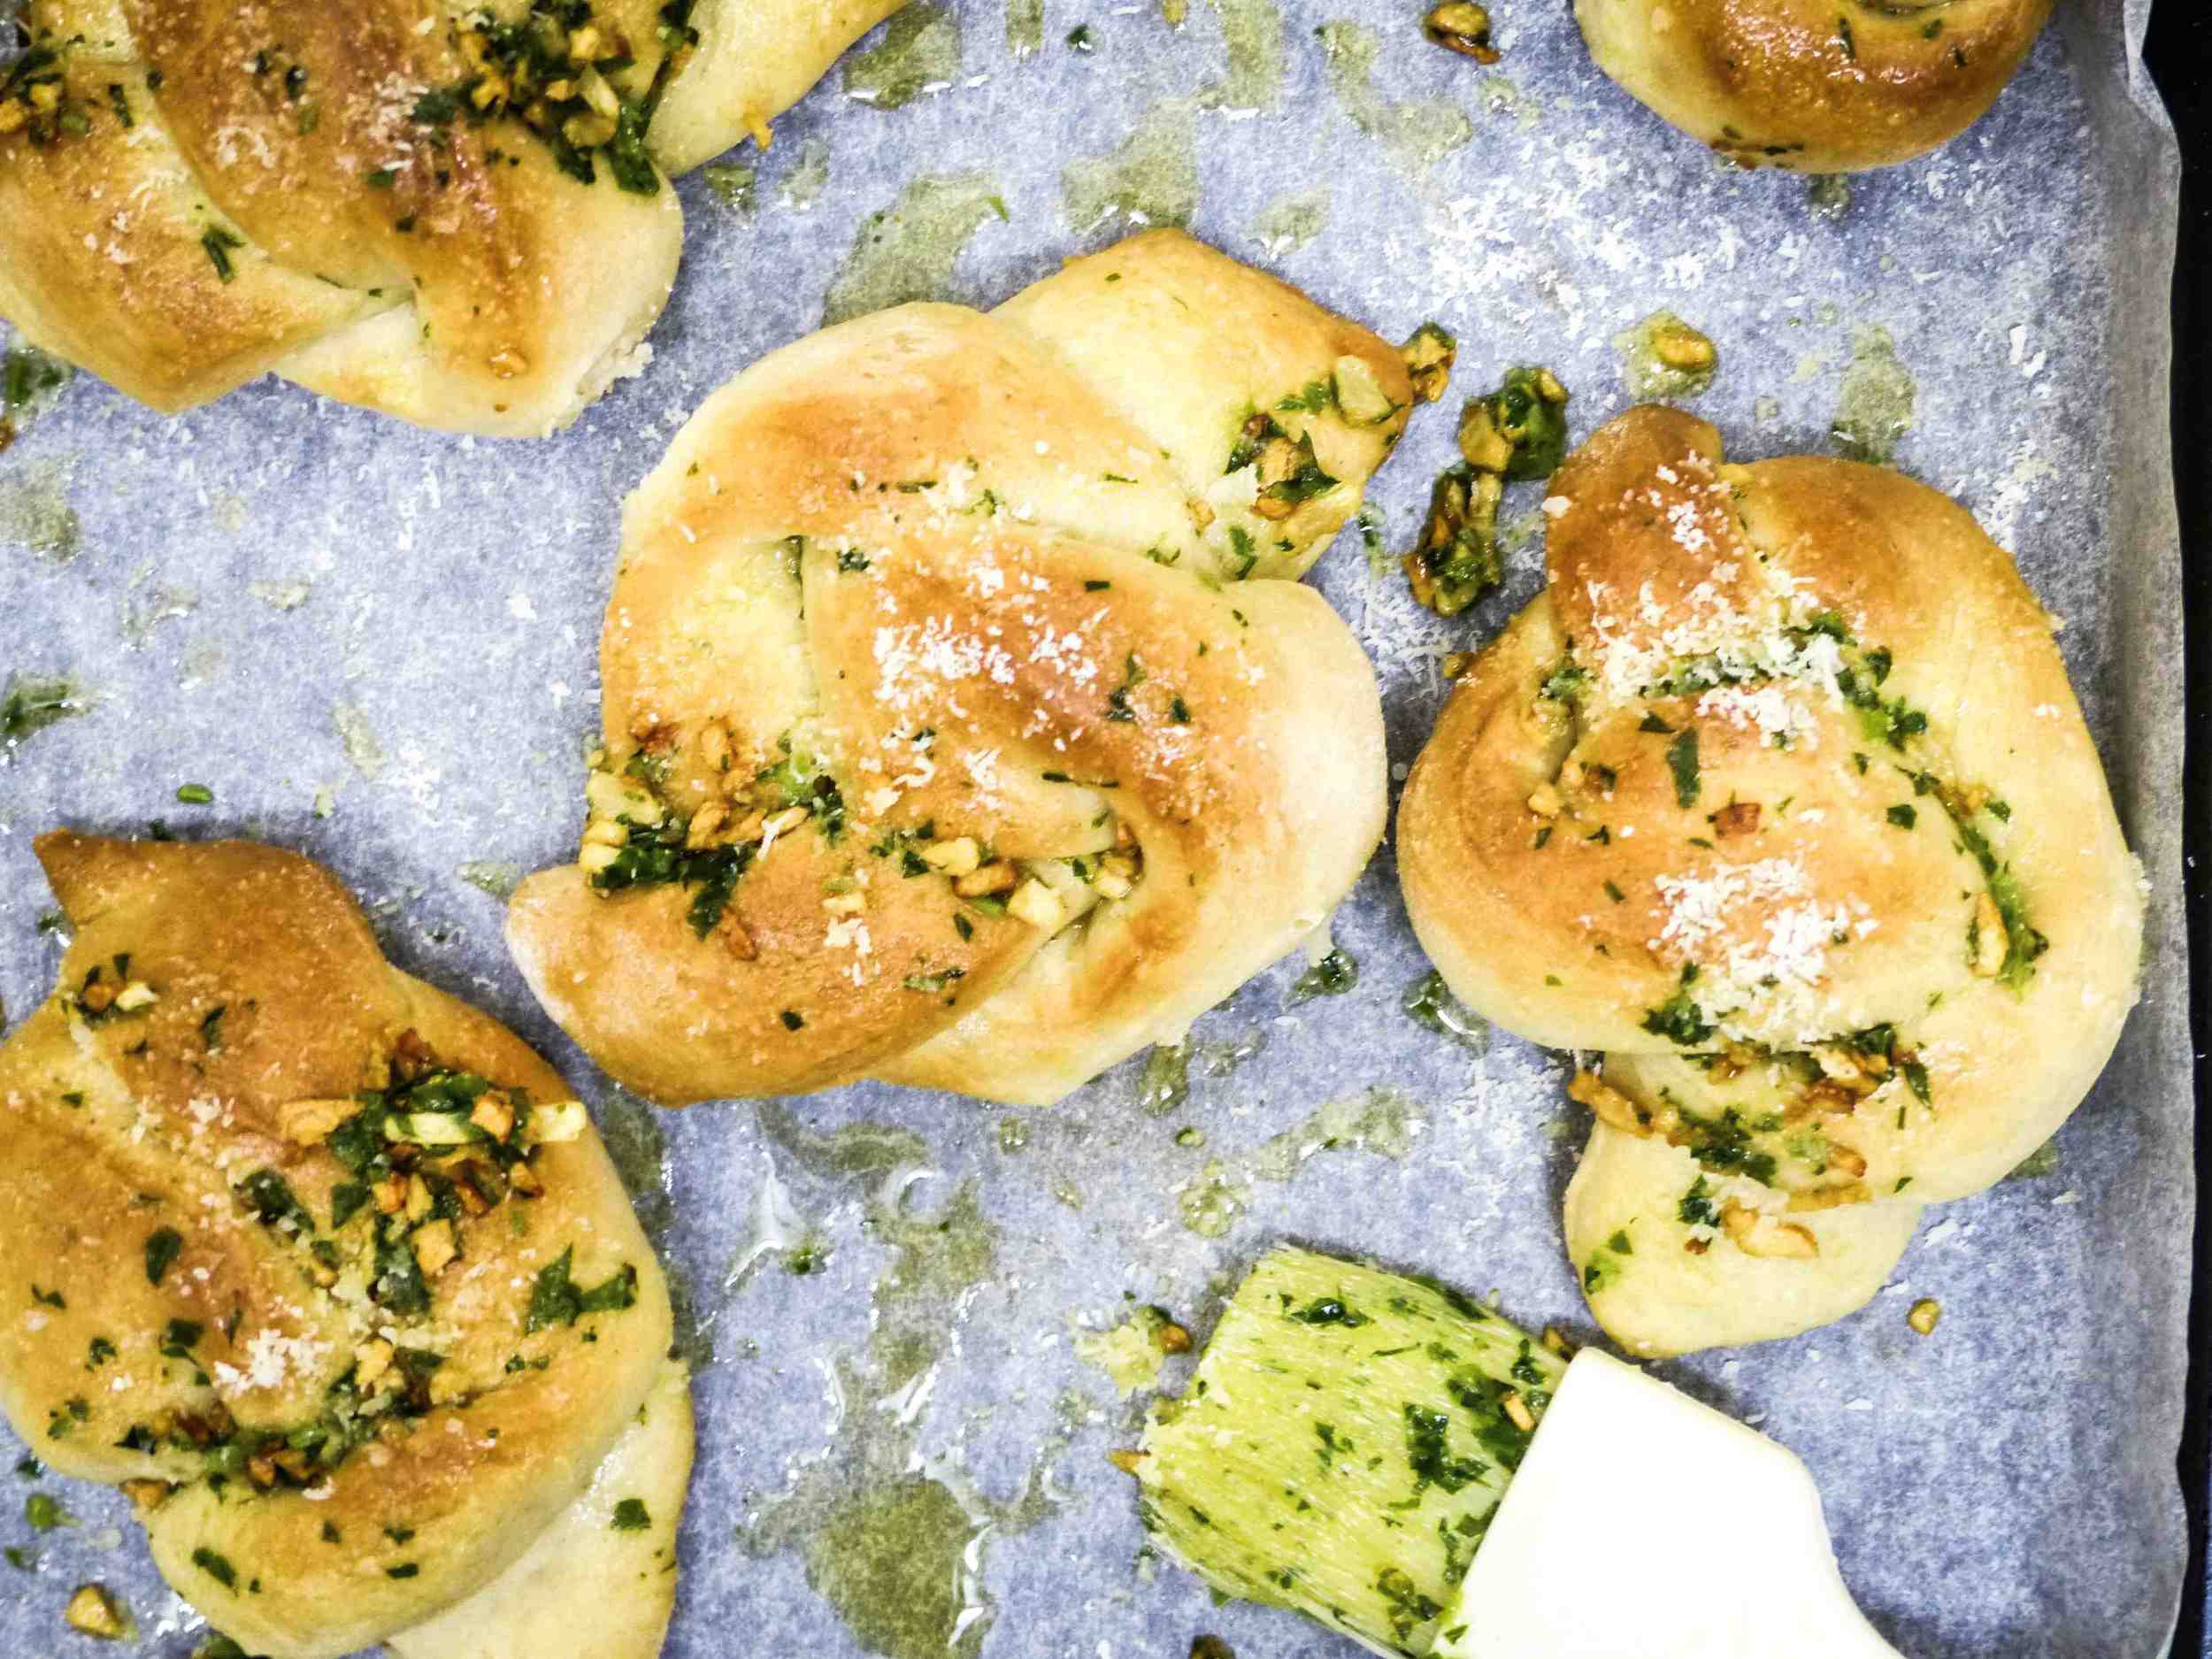 Brushing the garlic butter dressing and sprinkling sea salt and cheese on each knot.